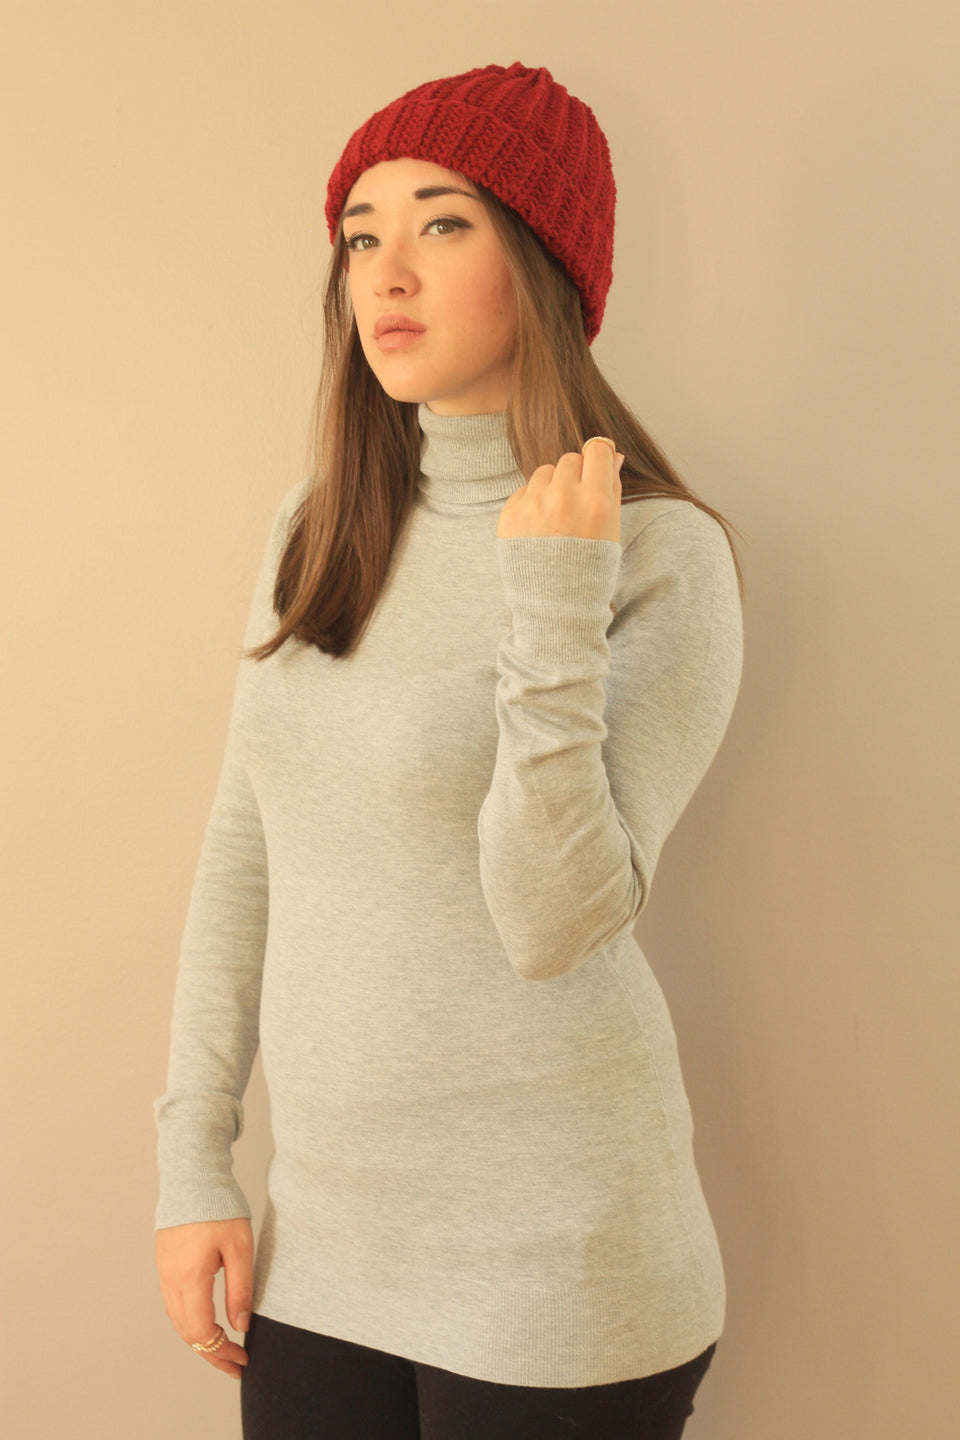 red ribbed classic folded beanie hat tuque